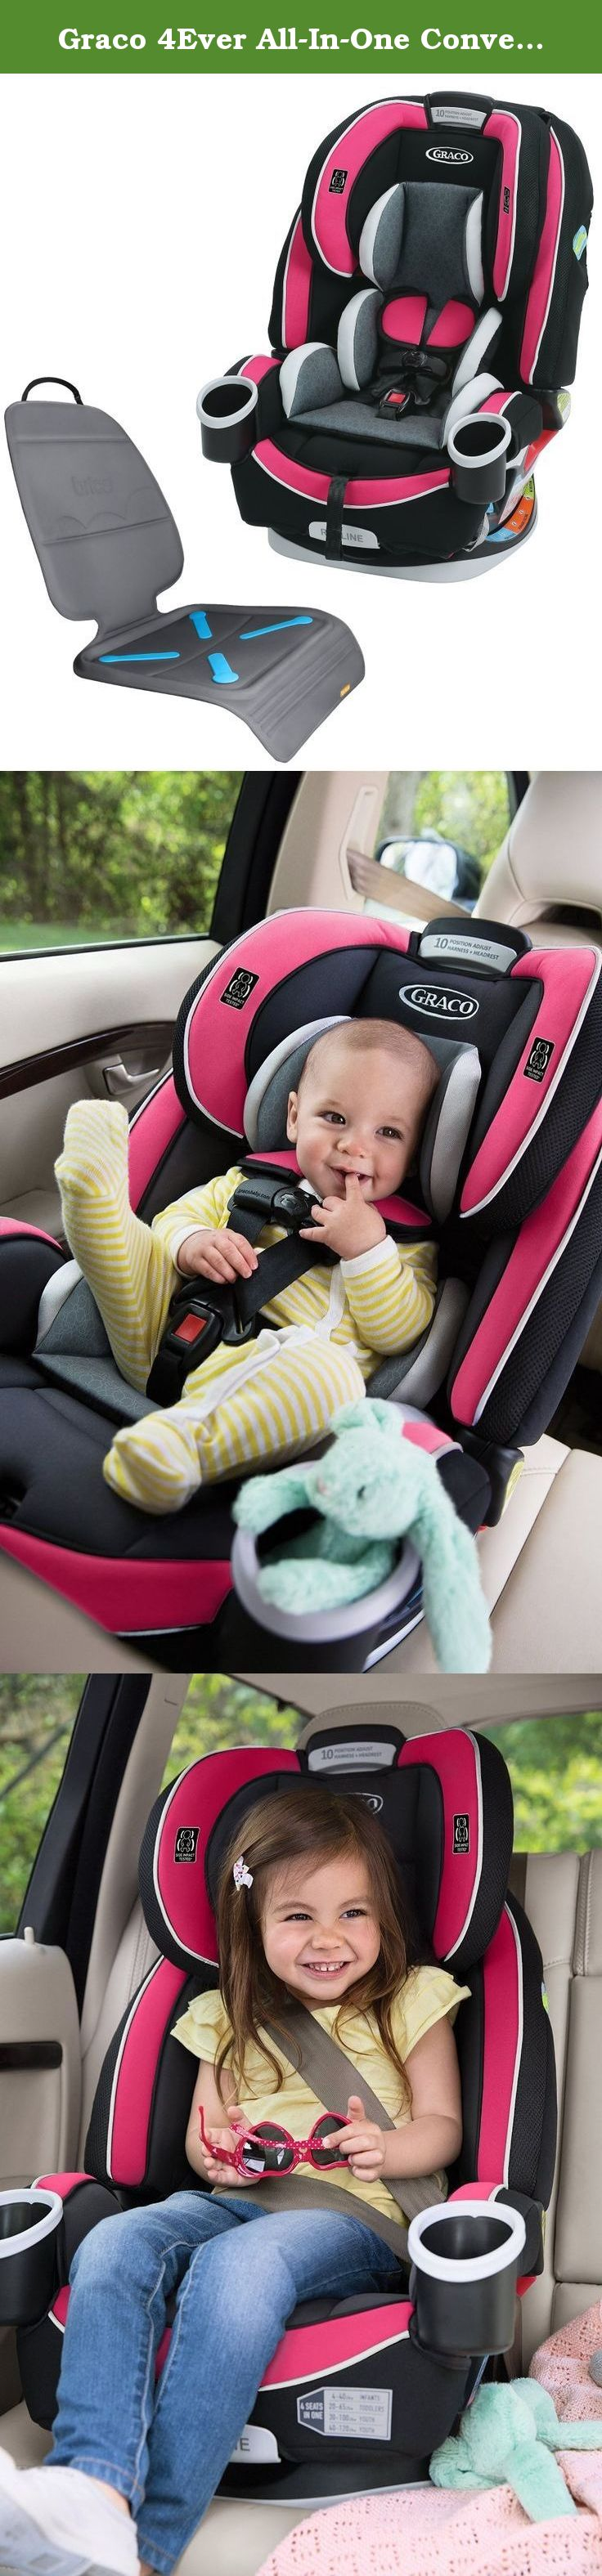 Graco 4Ever All In One Convertible Car Seat With Protector Azalea Gives You 10 Years